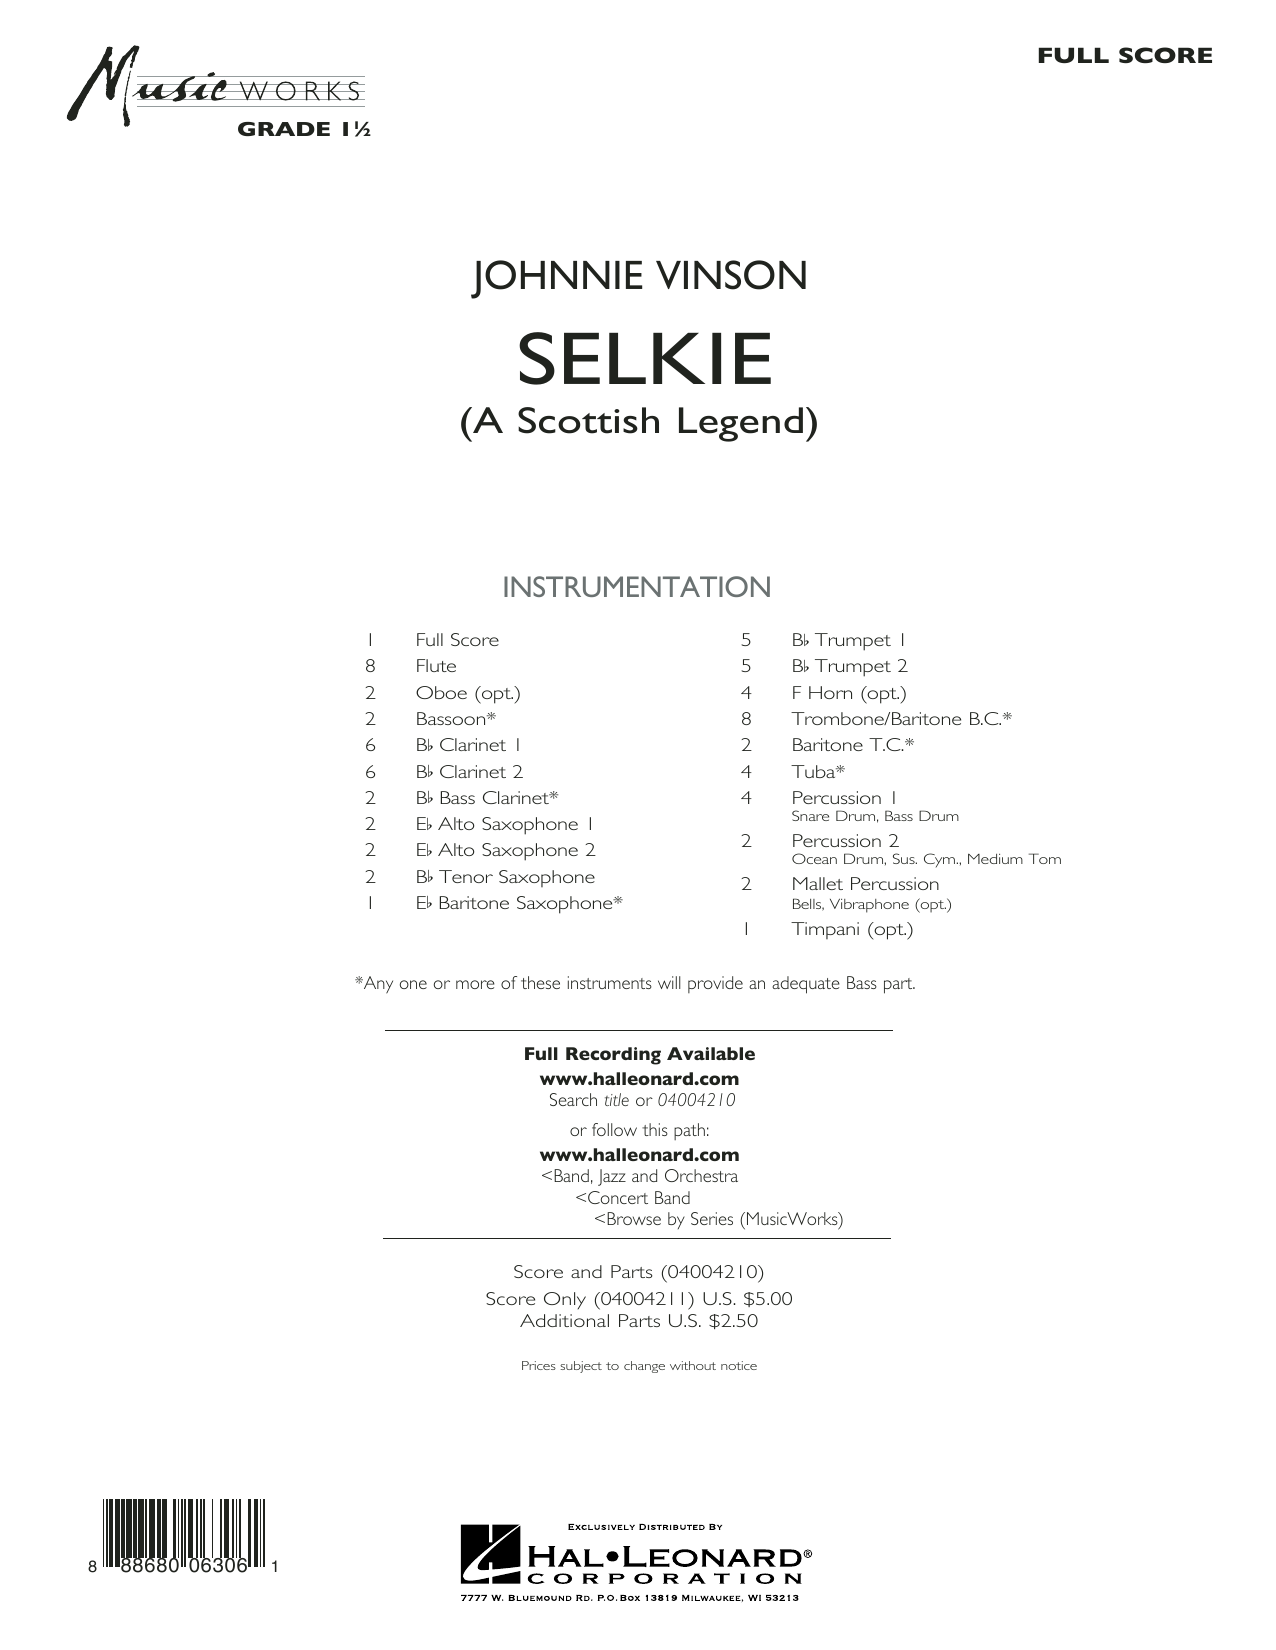 Selkie (A Scottish Legend) (COMPLETE) sheet music for concert band by Johnnie Vinson